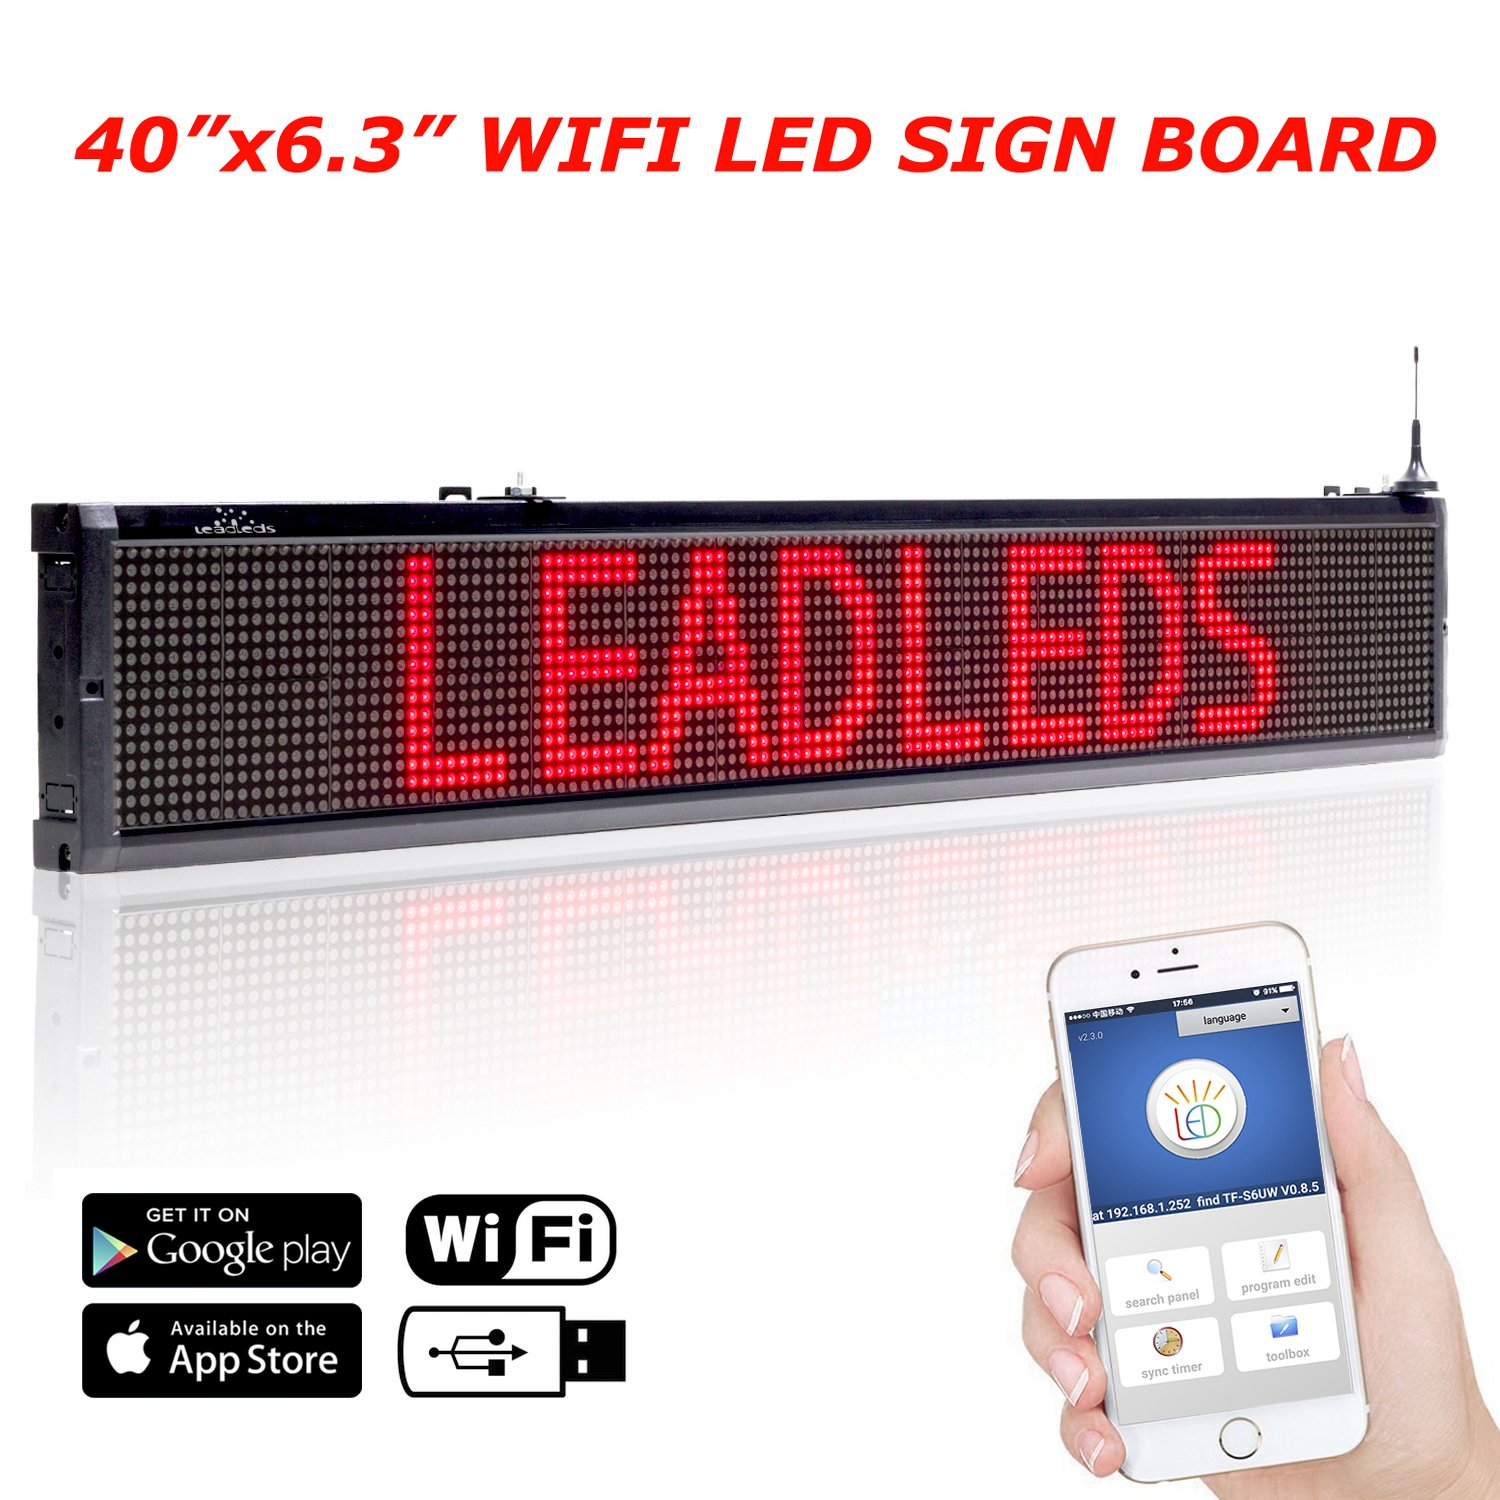 Leadleds 40x6.3 Inches Wifi Scrolling LED Sign Red Message Display Board, Storefront LED Sign Board for Business, Free App Working with Smartphone and Tablet